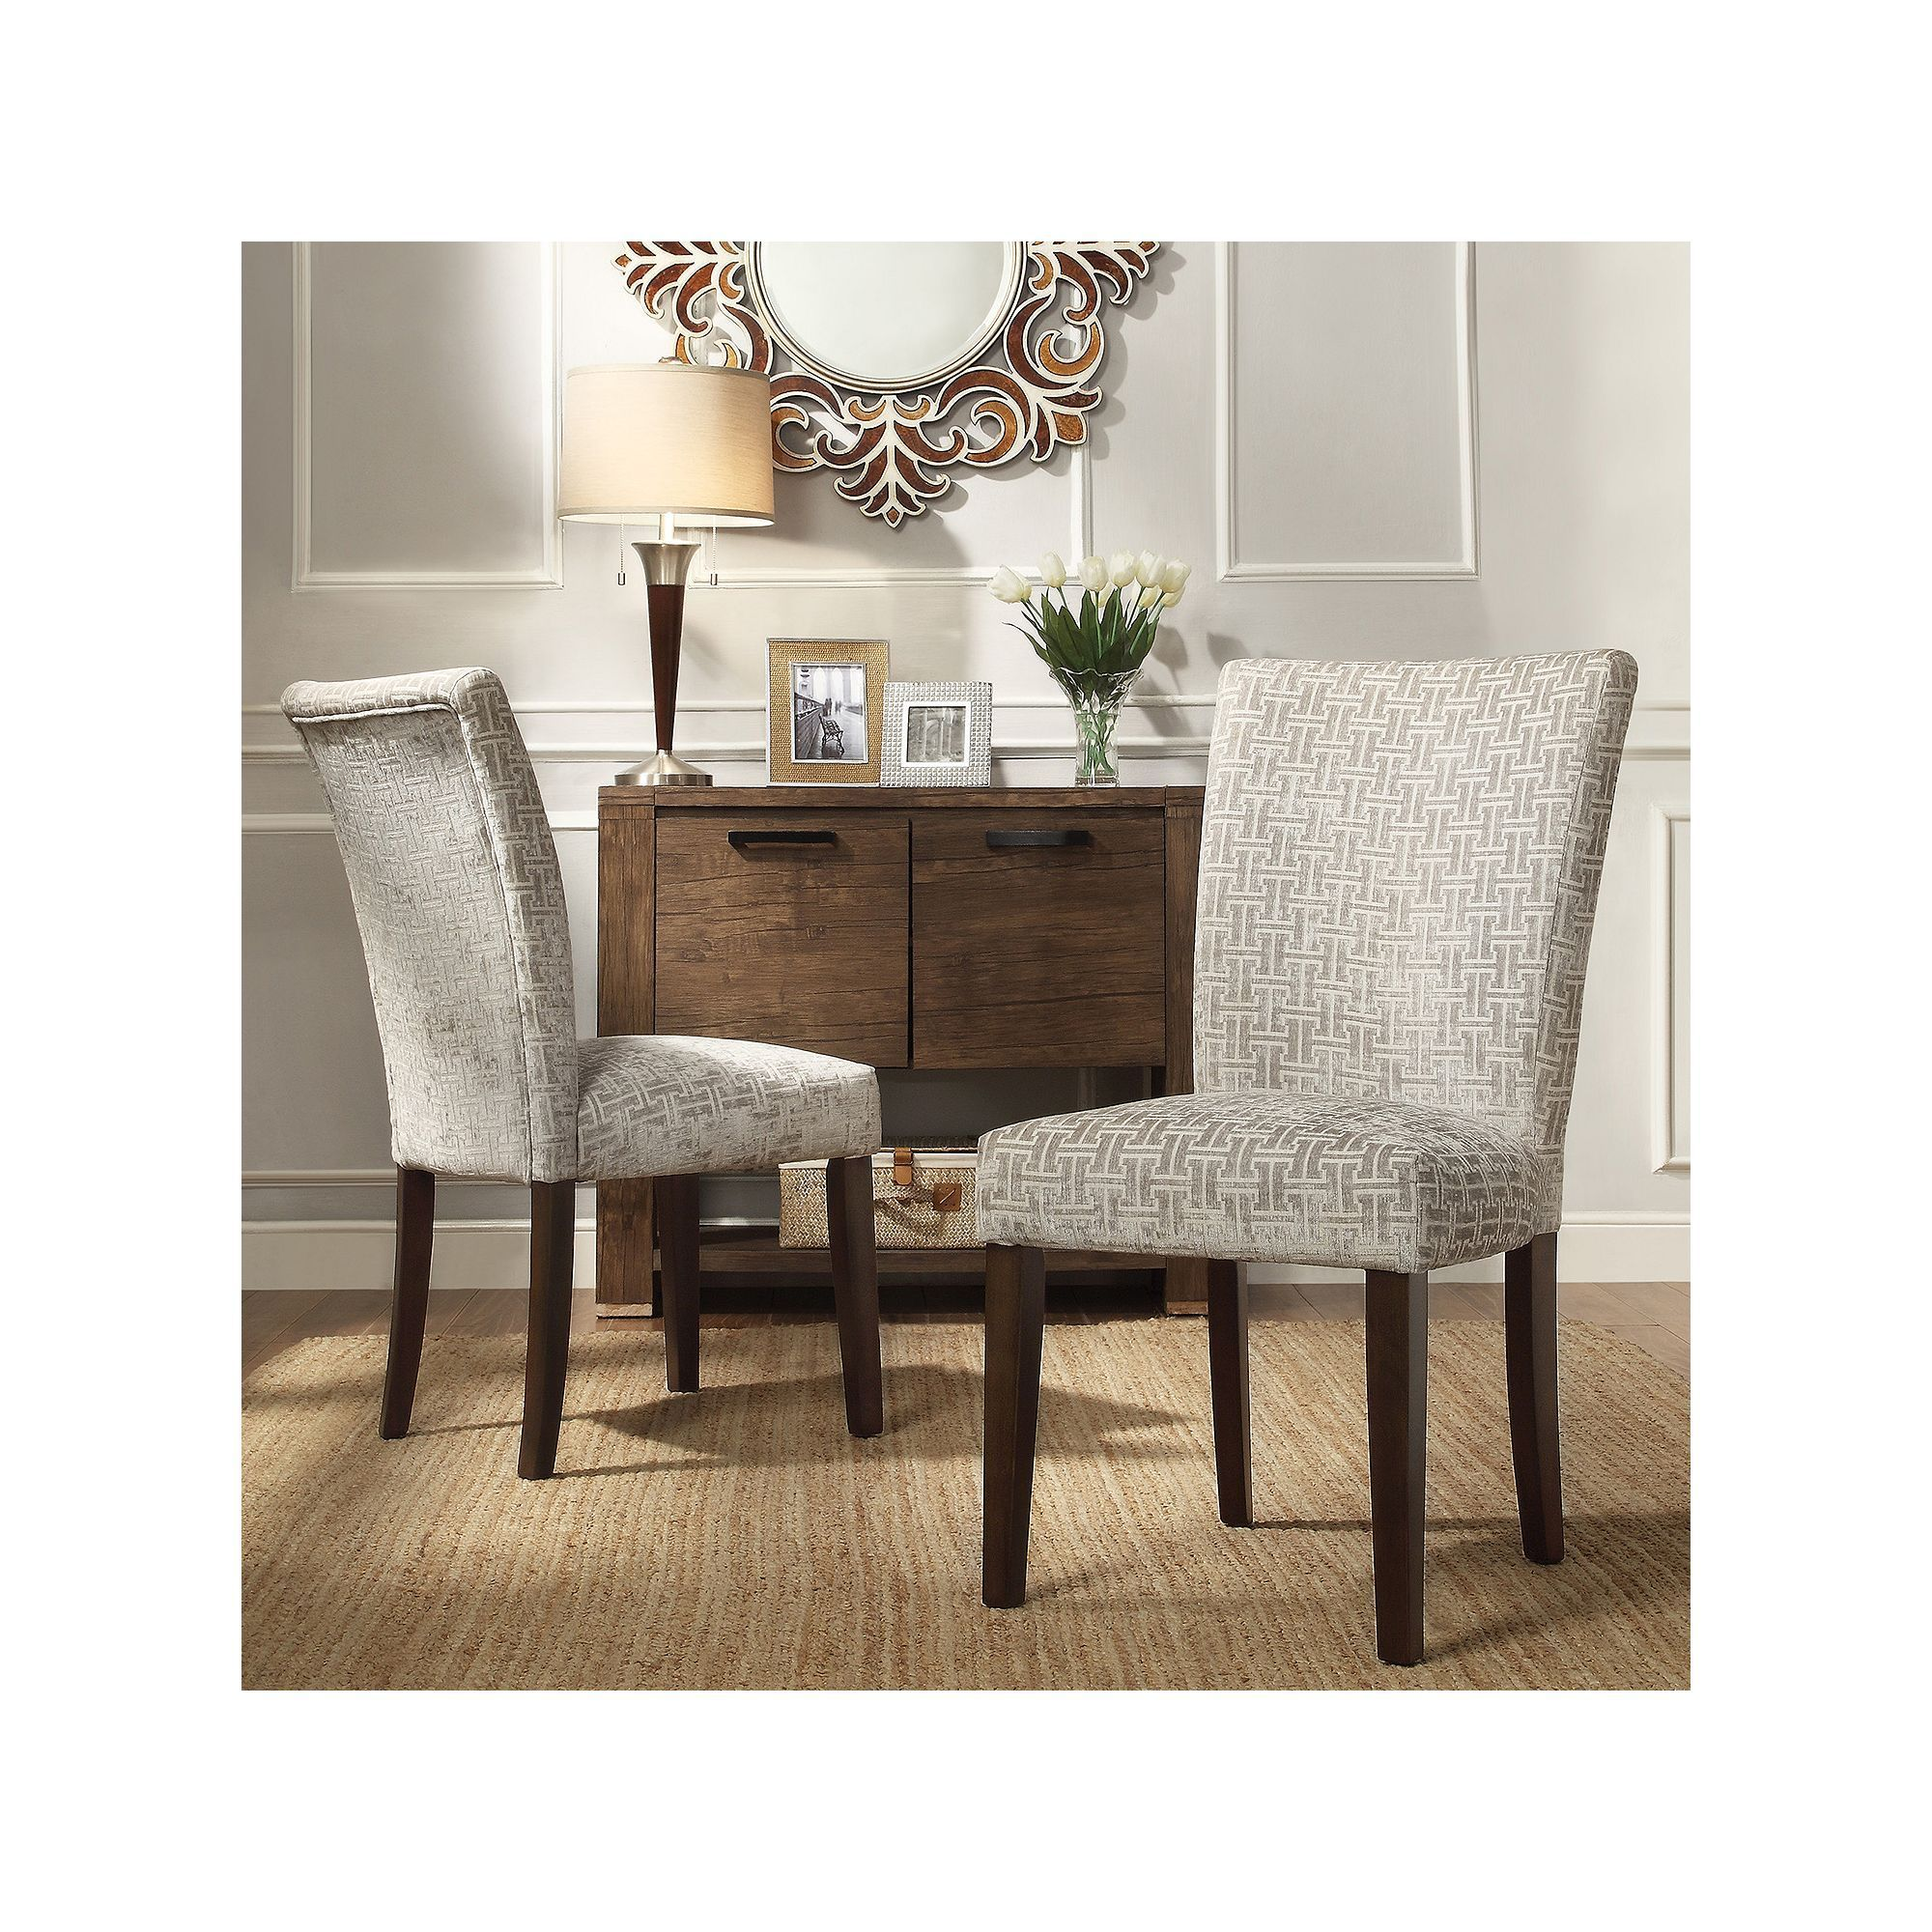 Homevance Denargo Printed Side Chair 2 Piece Set Grey